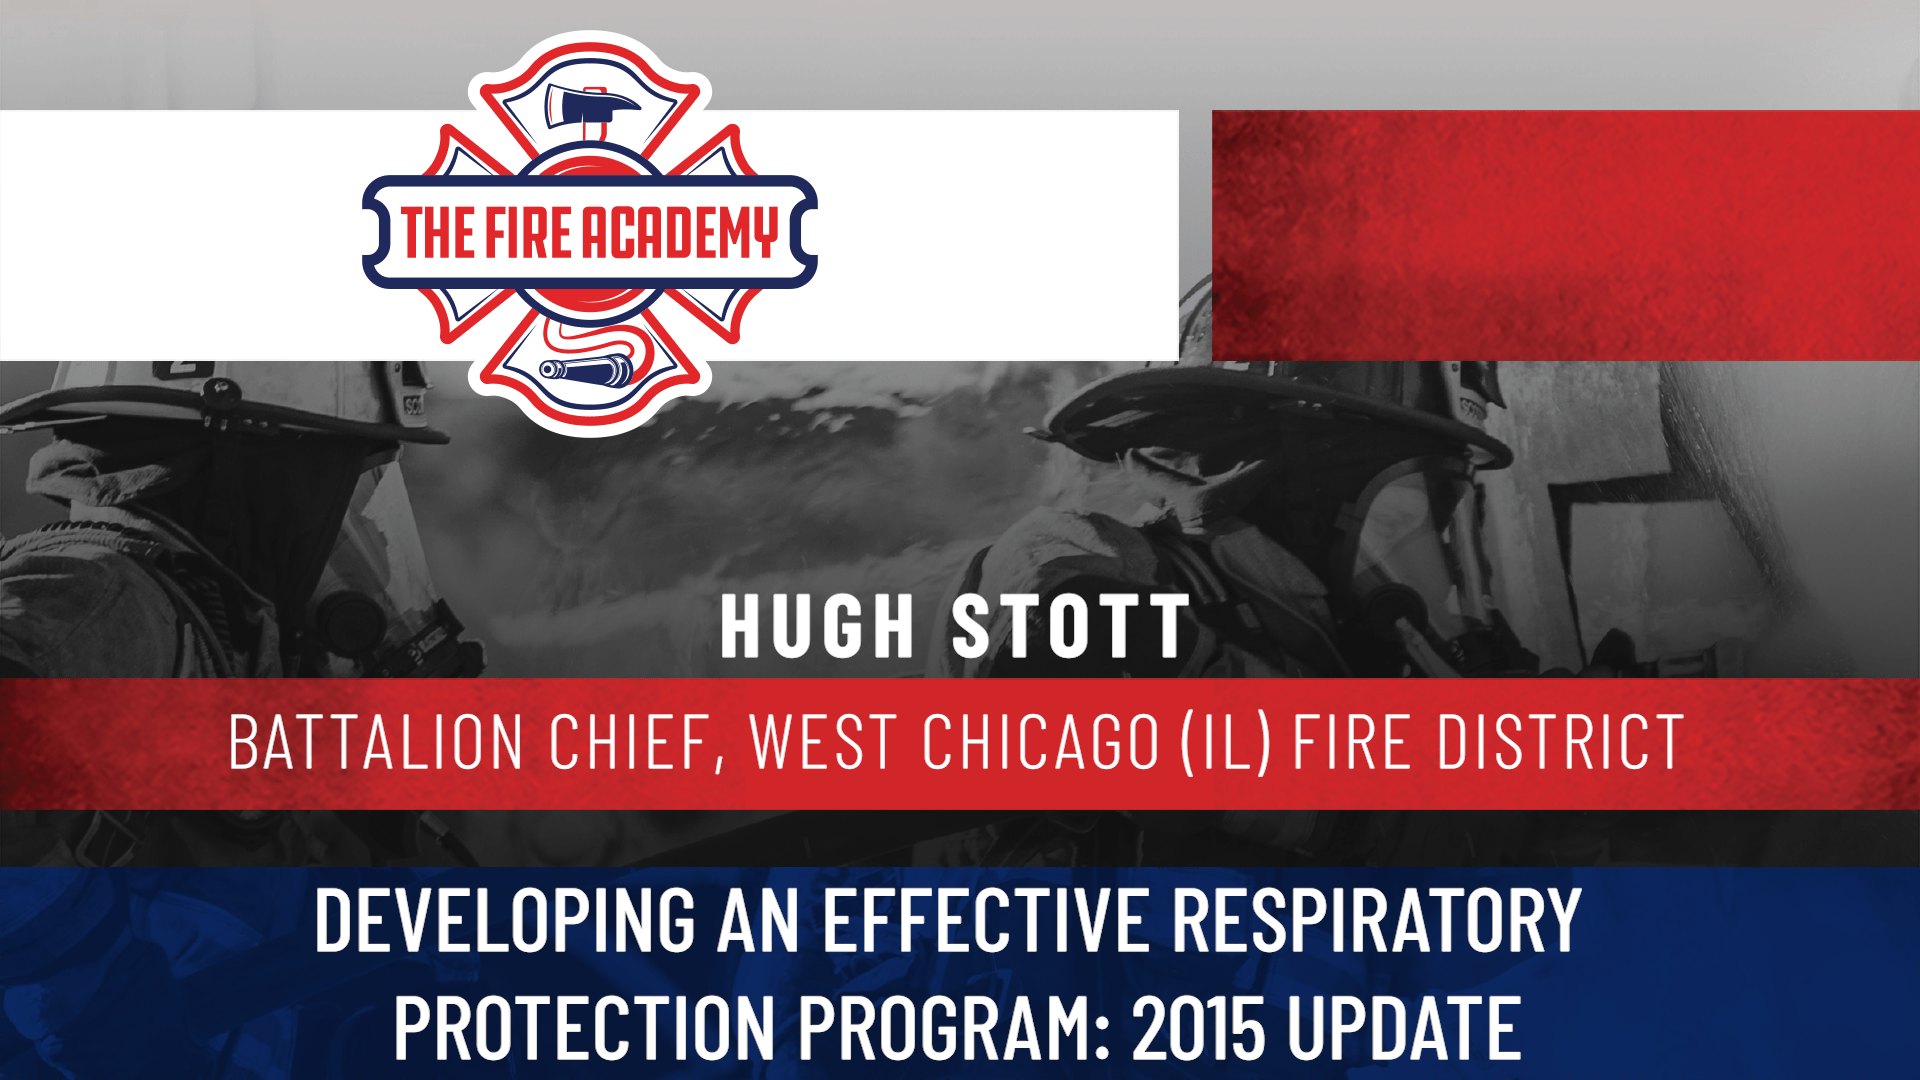 Developing an Effective Repiratory Protection Program: 2015 Update